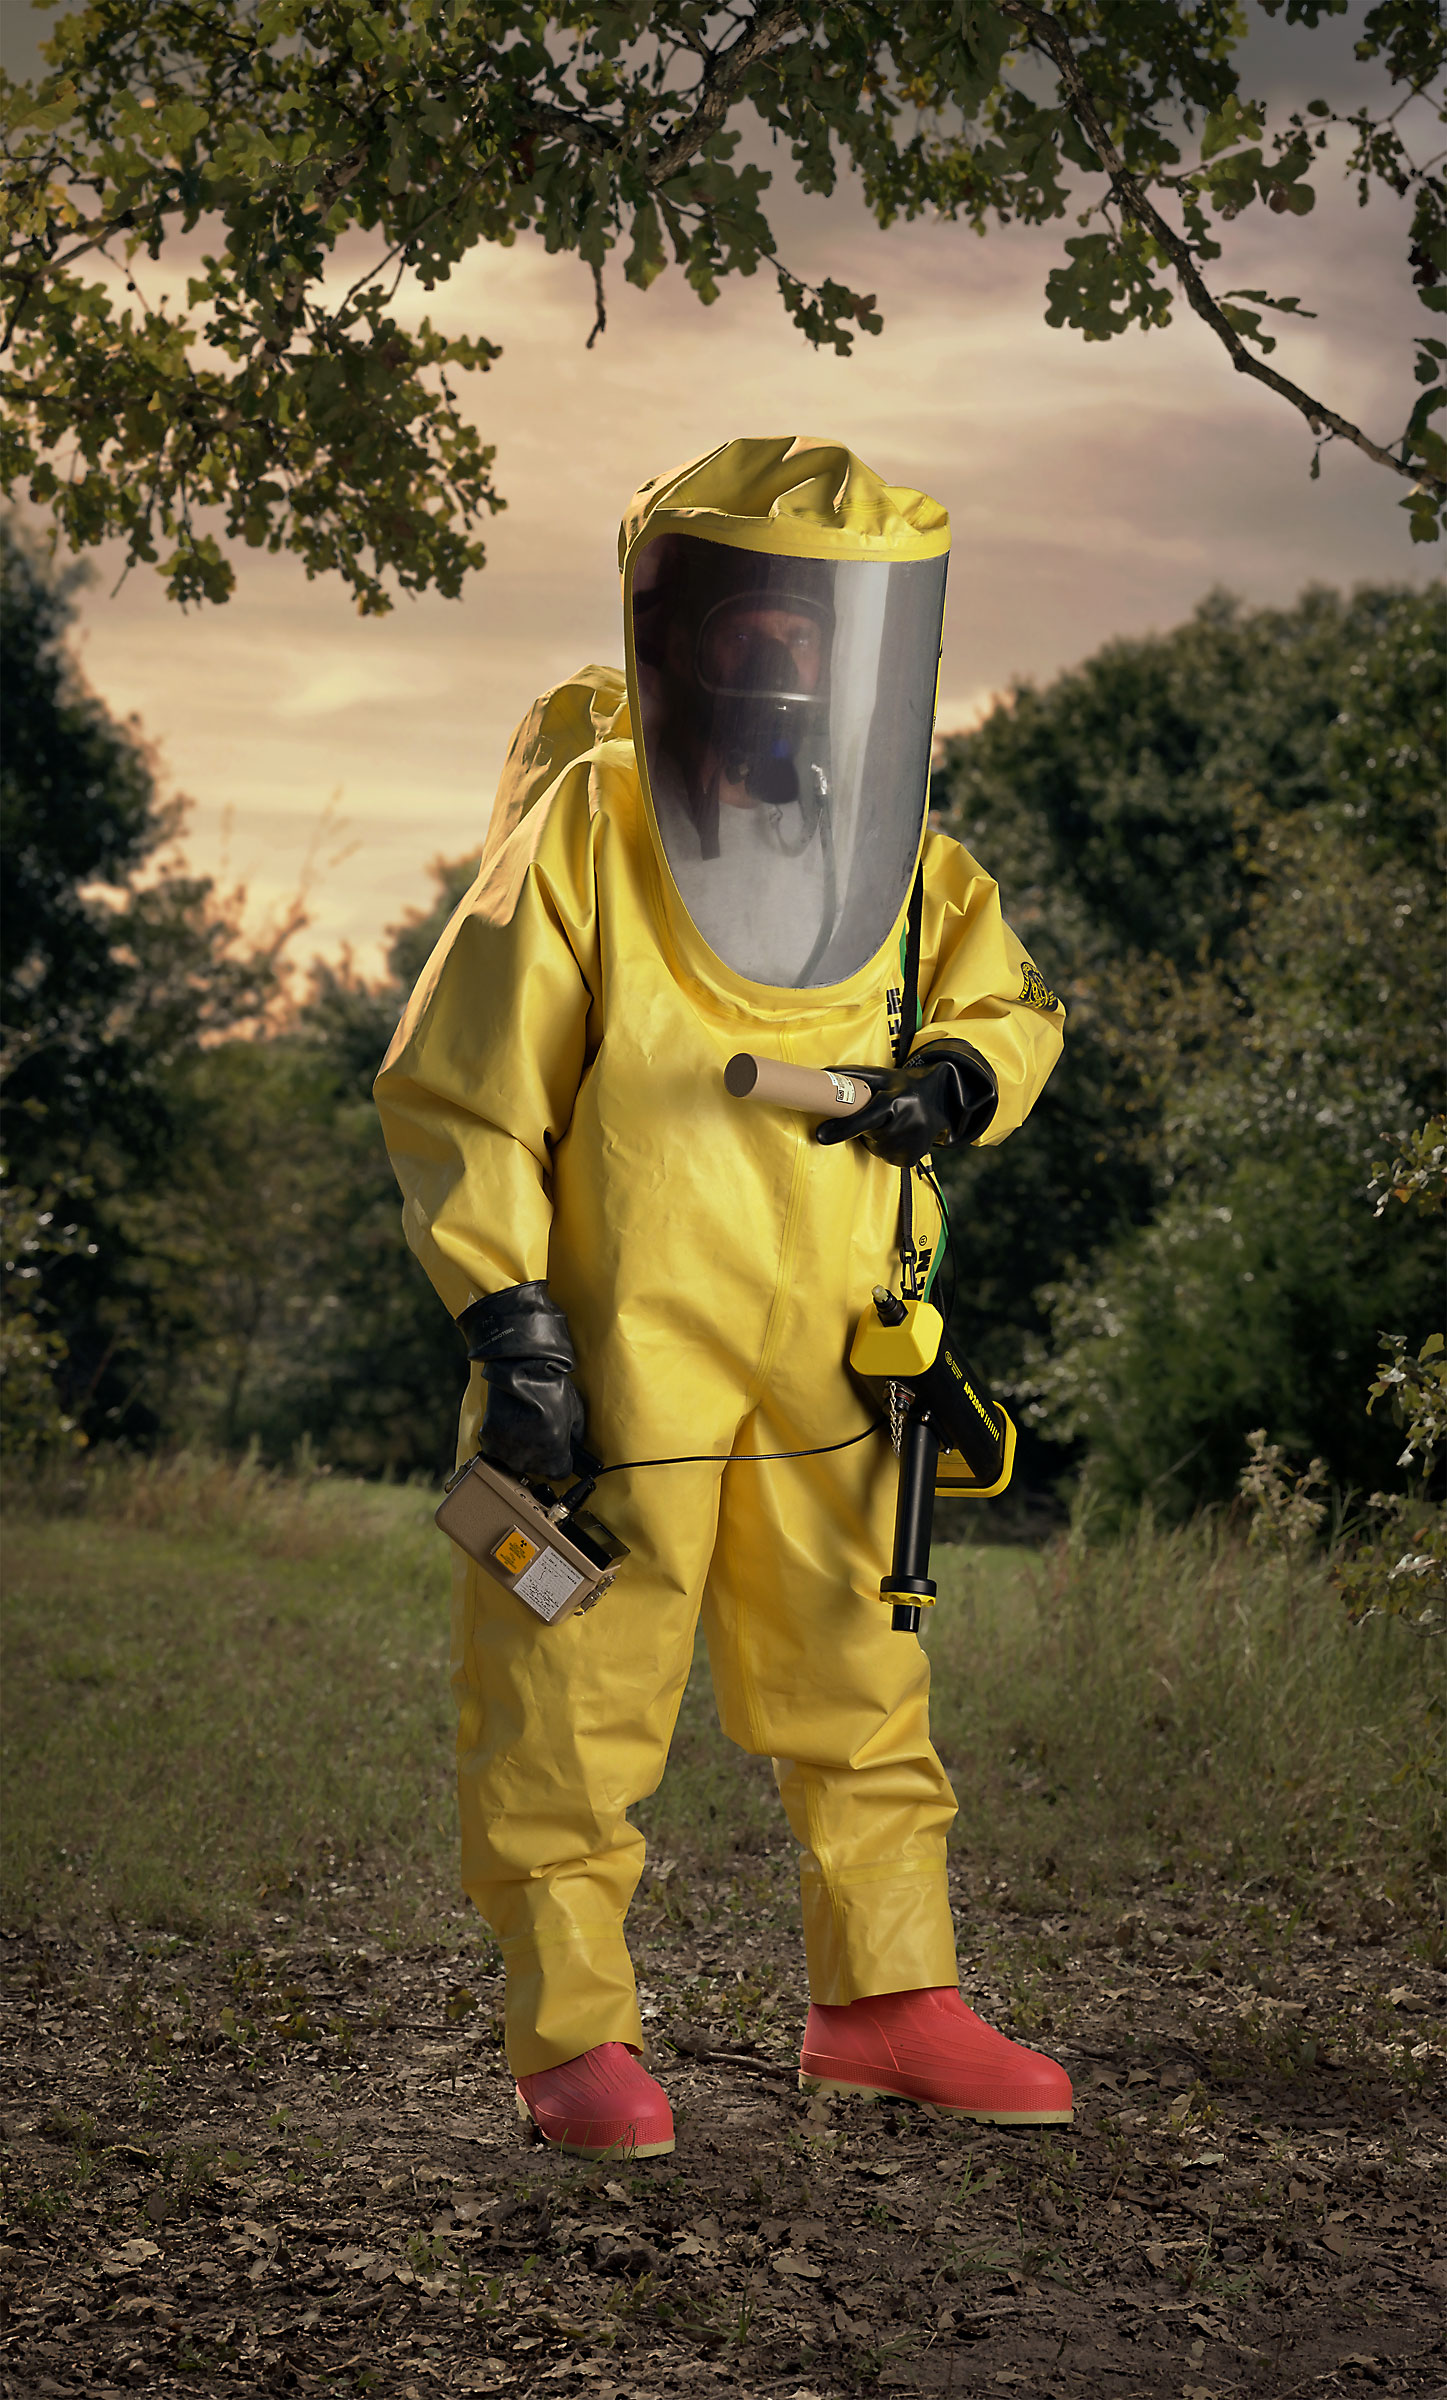 <p><em>Level A HAZMAT suit, yellow (&#8220;Disaster City&#8221;, National Emergency Response and Rescue Training Center, Texas Engineering and Extension Service, College Station, Texas)</em>, 2004, pigmented inkjet on canvas with varnish, 63X38 inches</p>